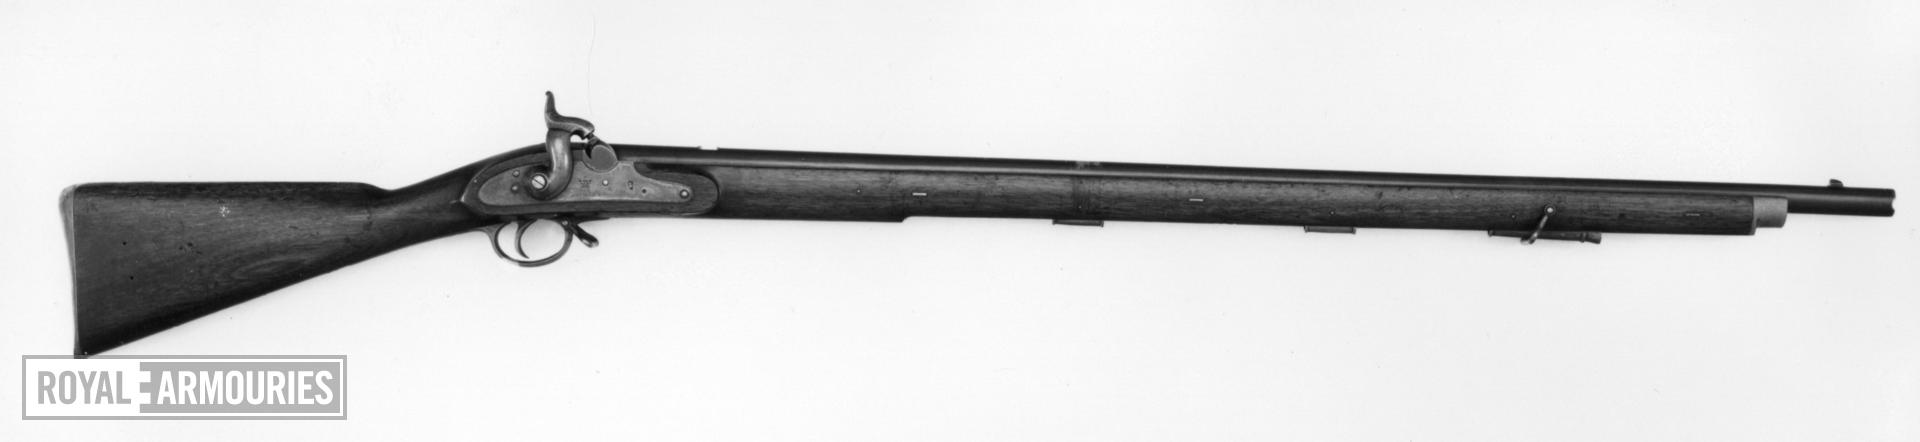 Percussion muzzle-loading military rifle-musket